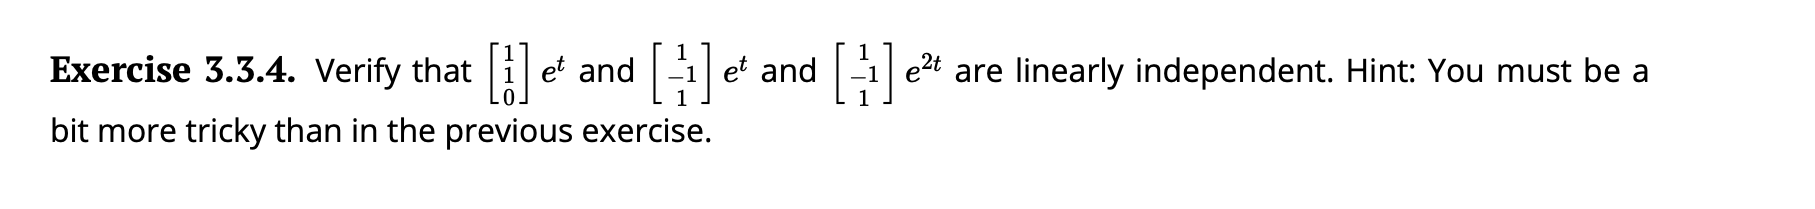 Exercise 3.3.4. Verify that et and 1e2t are linearly independent. Hint: You must be a et and bit more tricky than in the previous exercise.